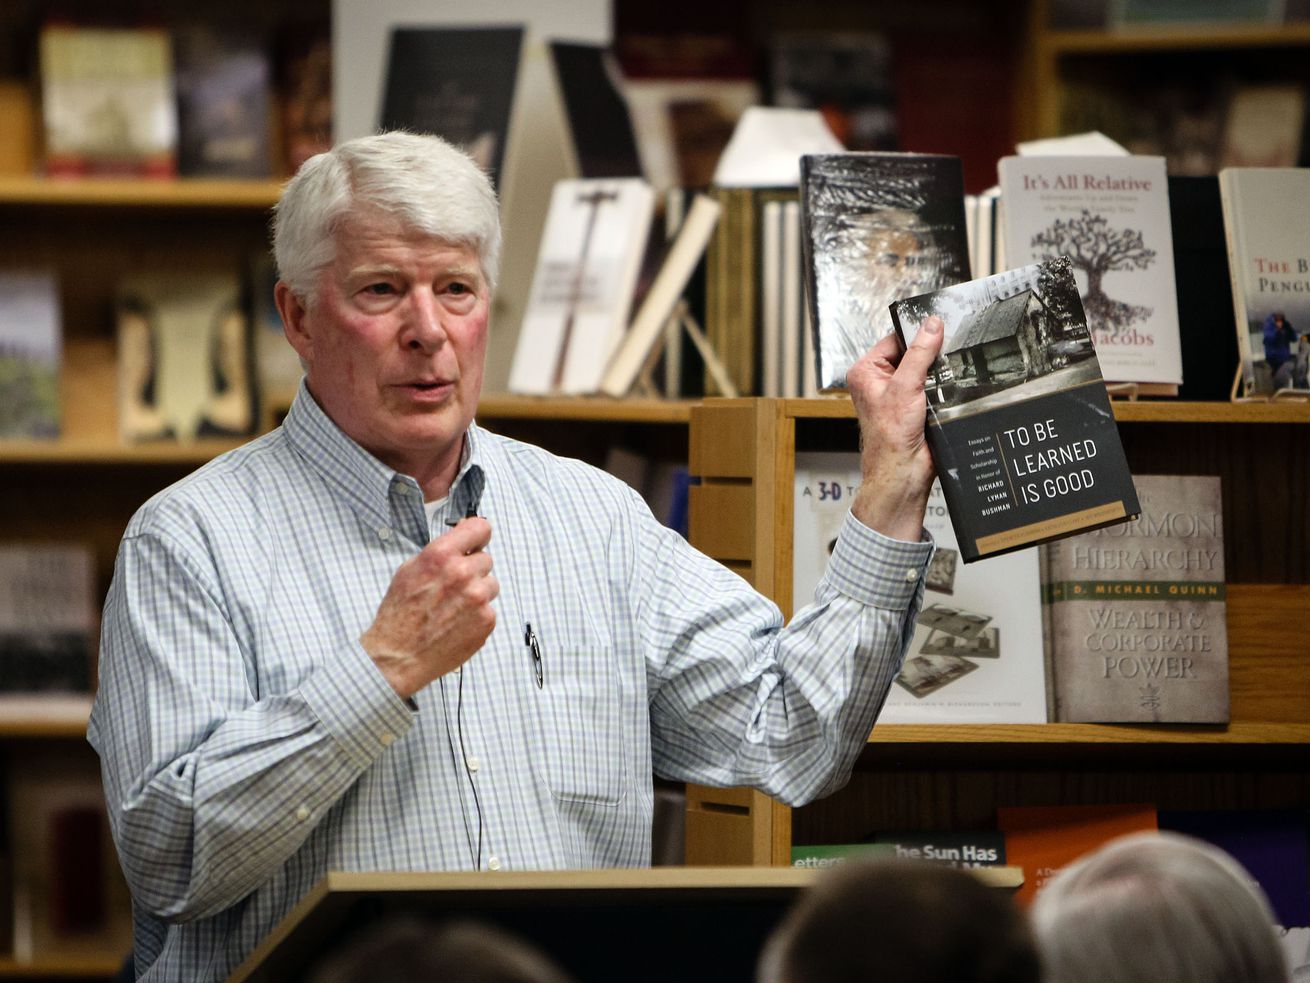 Curt Bench holds a book and speaks to a crowd gathered at his store Benchmark Books before an author's book signing event.